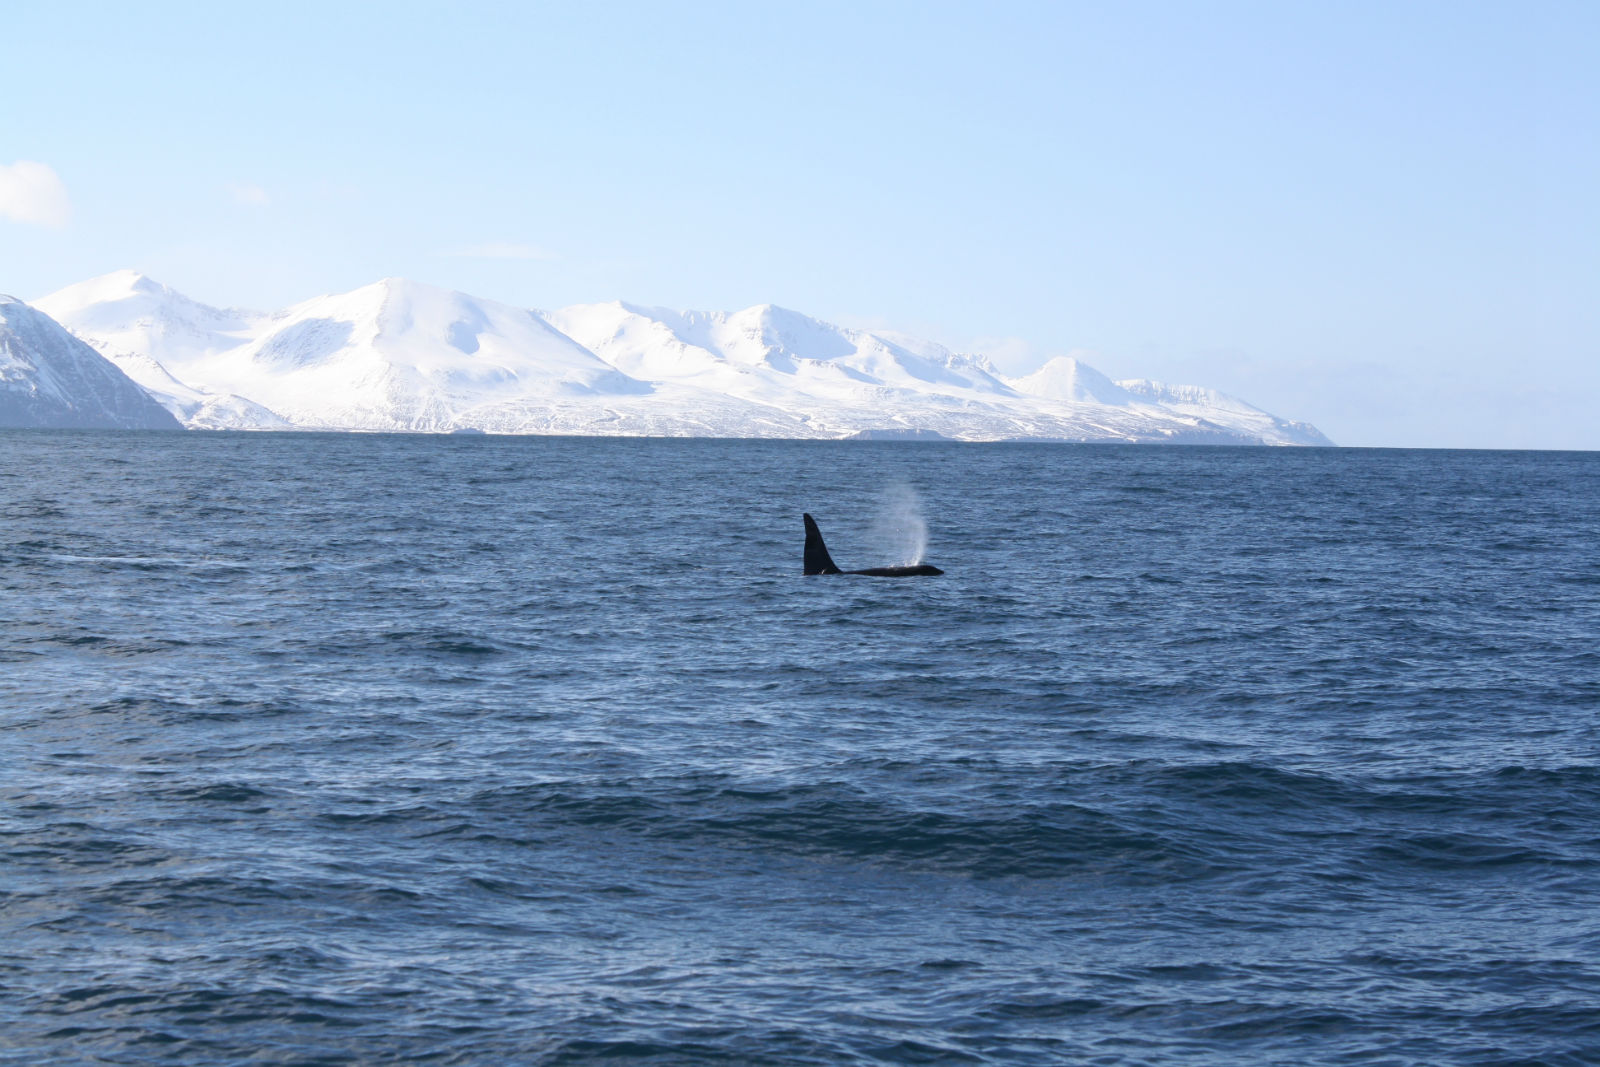 Whale Watching on the Edge of the Arctic